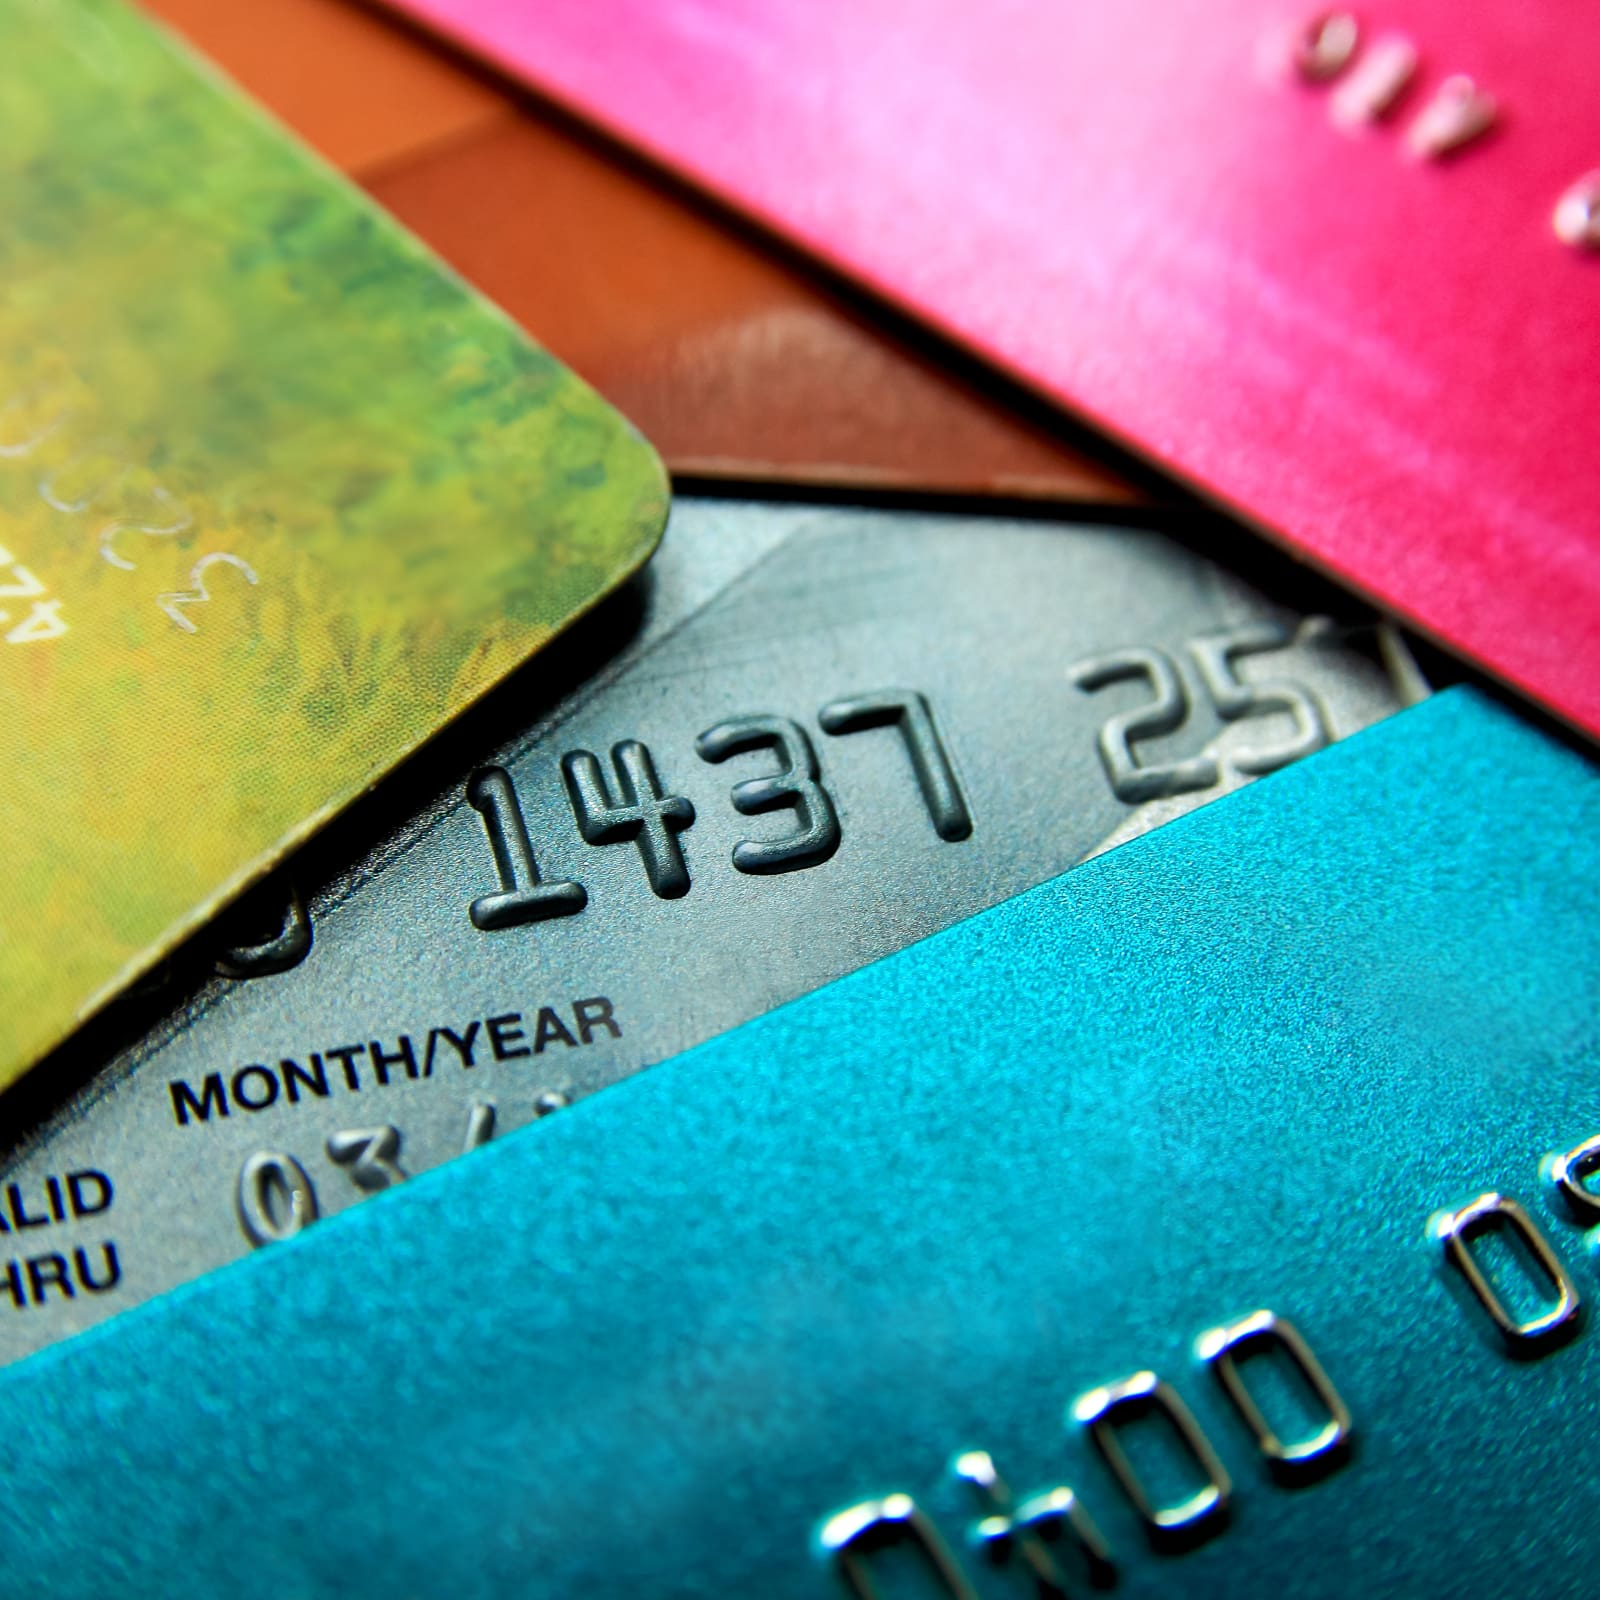 Credit Card Application Denied: What to Do Next - ValuePenguin